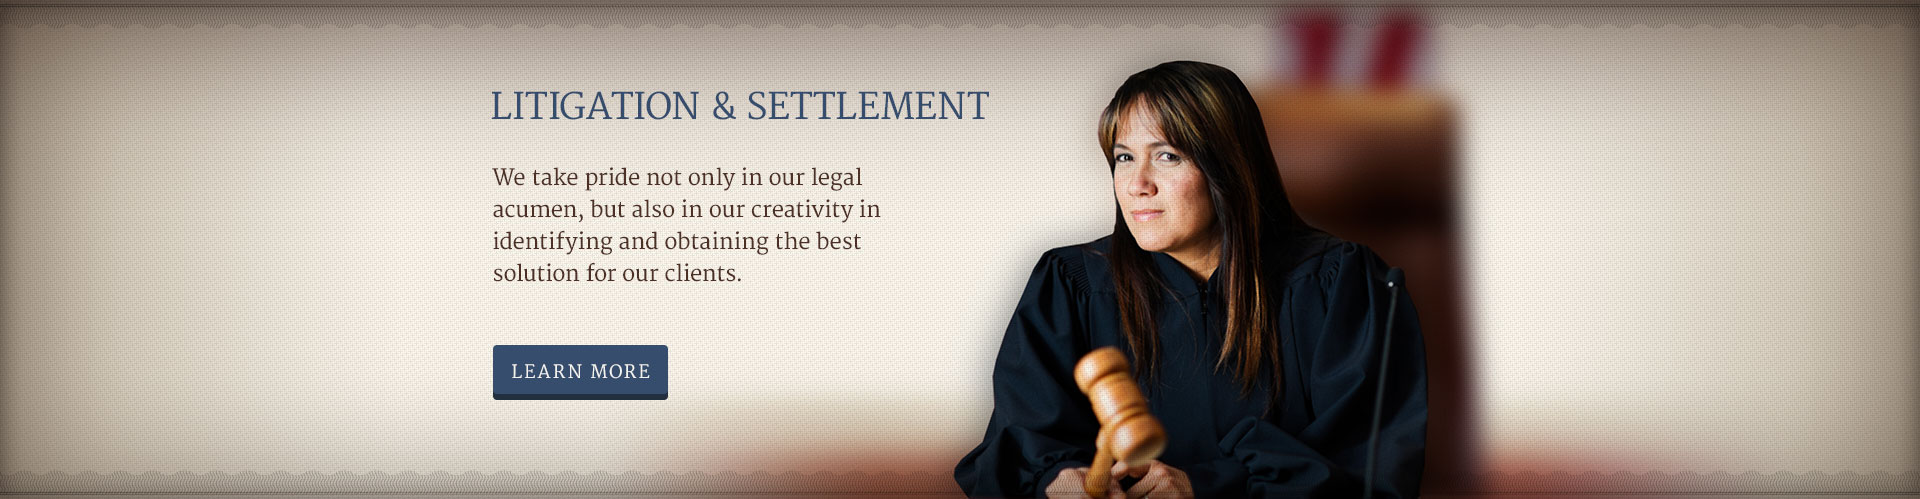 banner-litigation-and-settlement